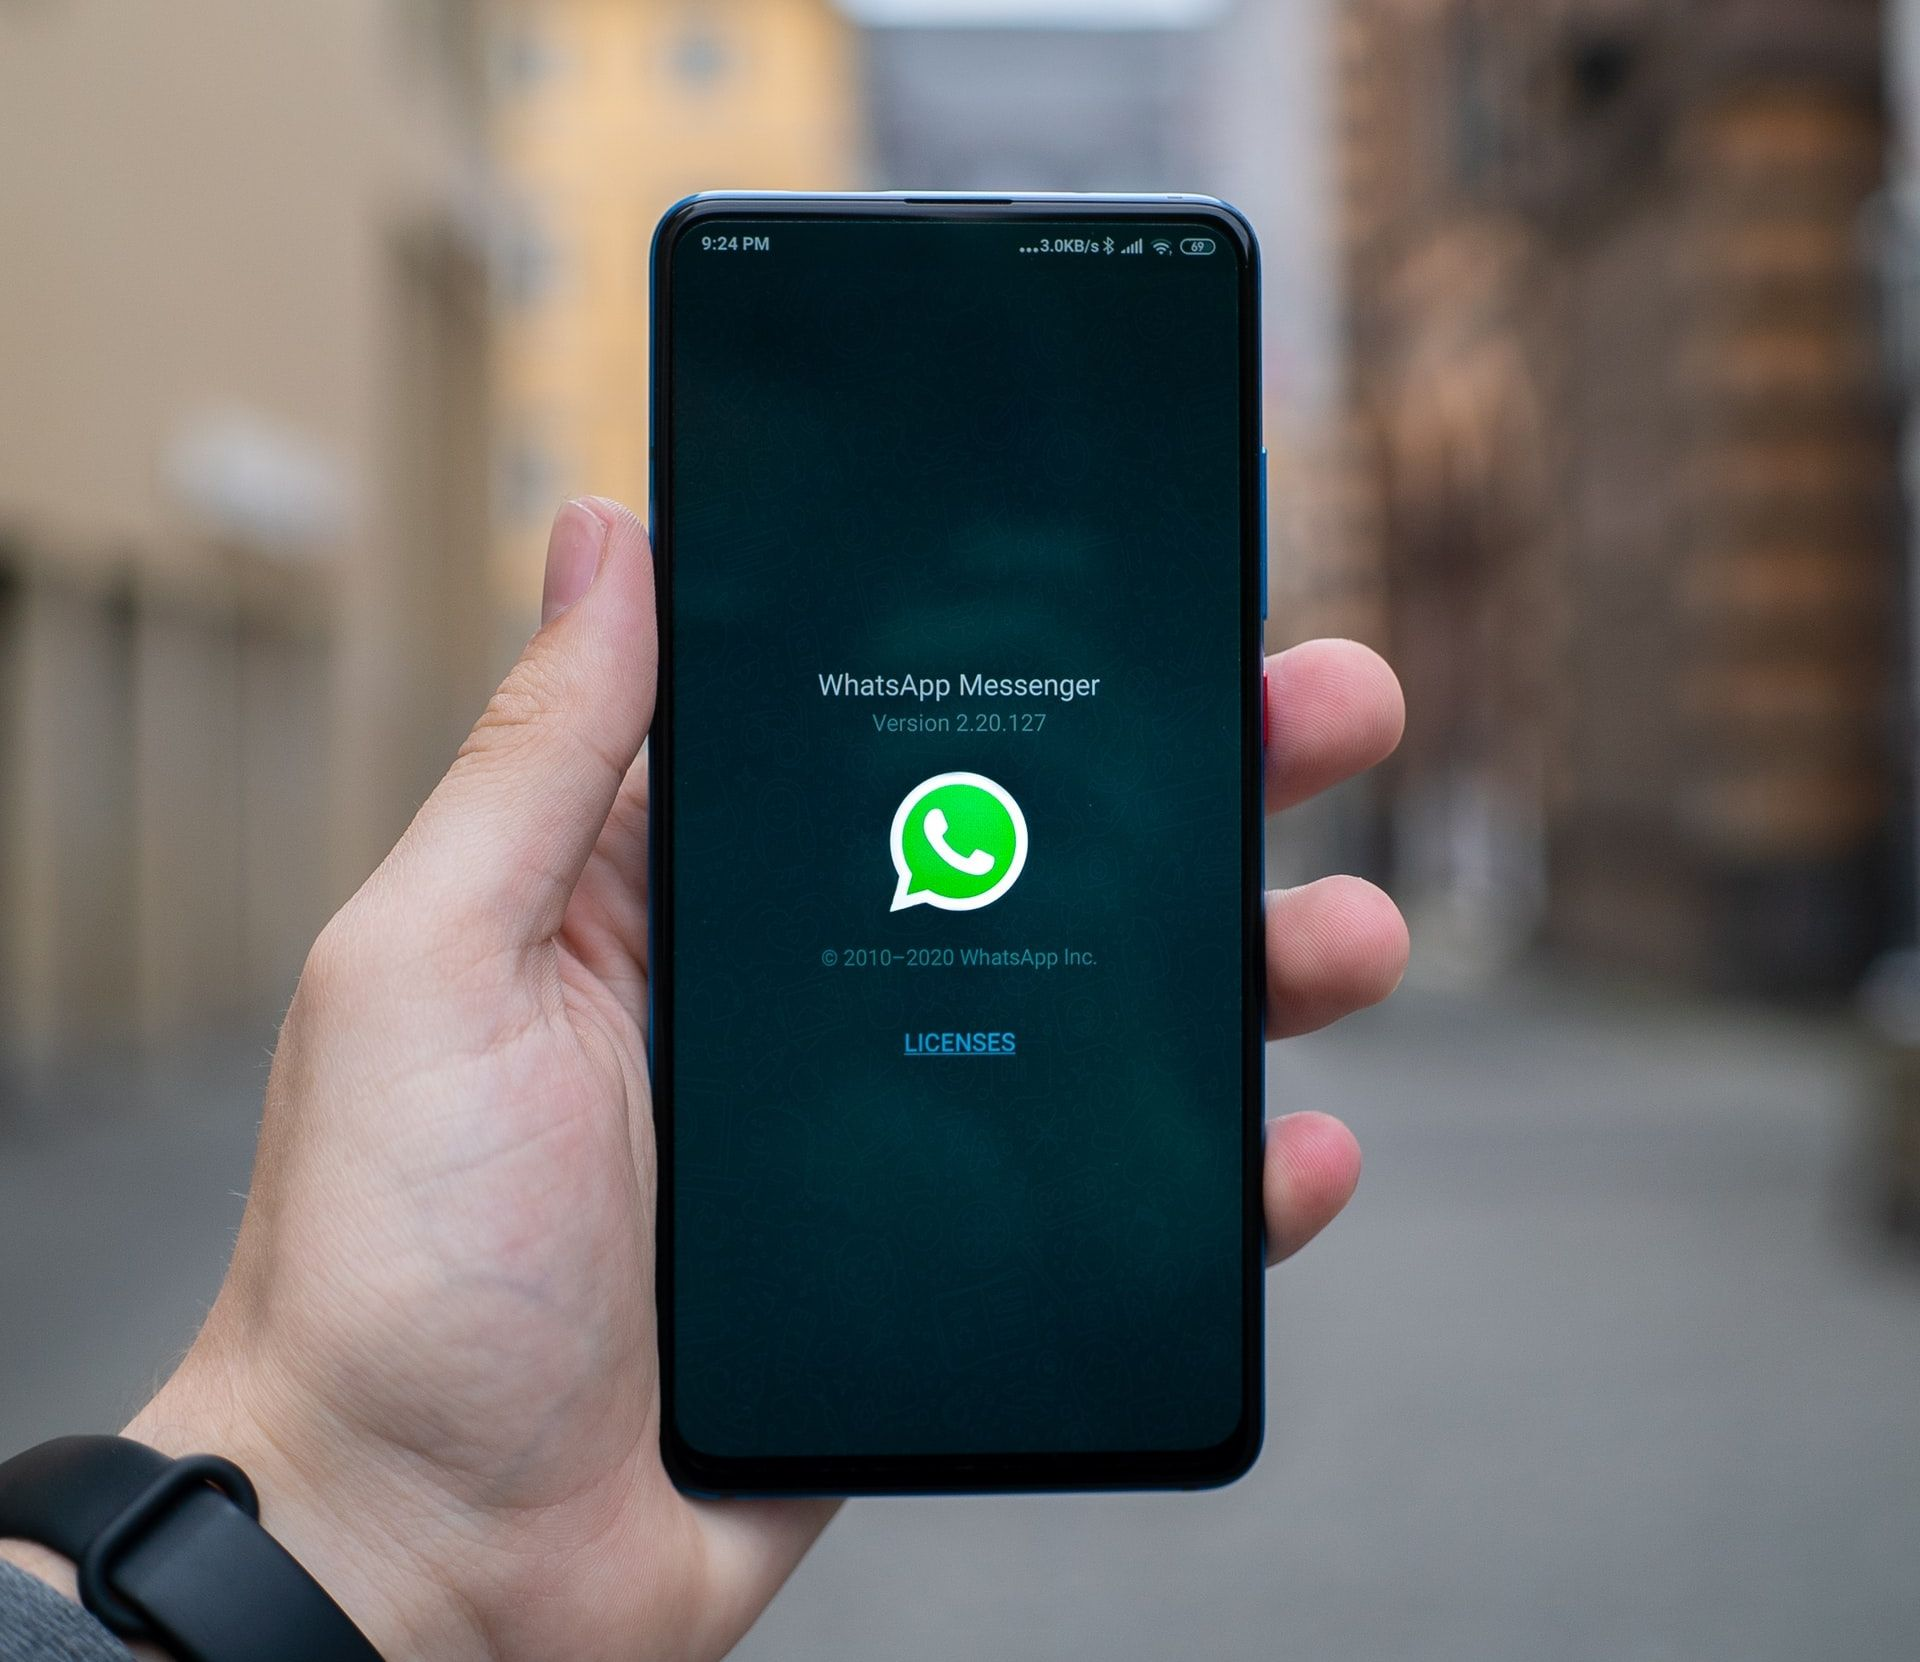 WhatsApp adds a highly requested feature: Messaging from multiple devices